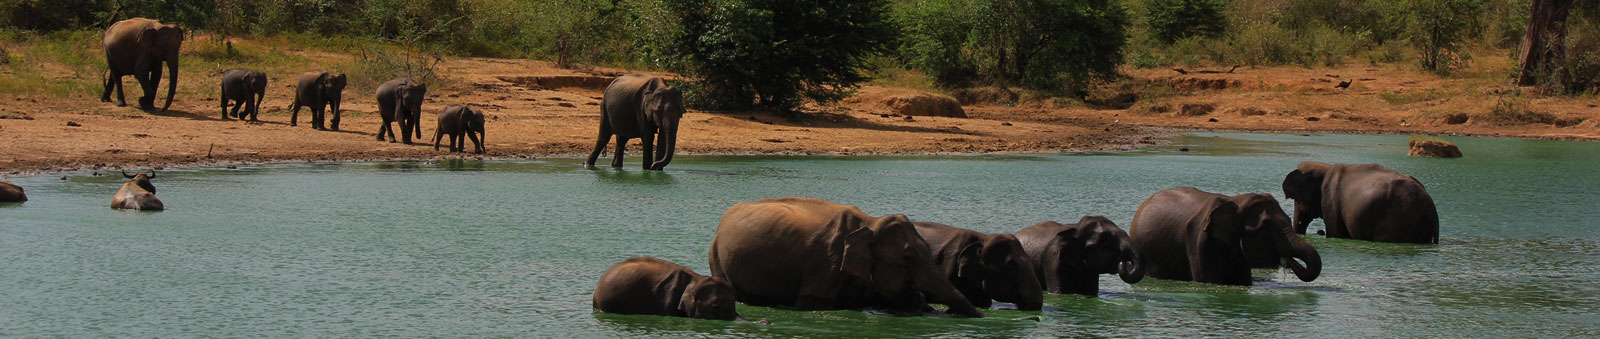 Elephants-in-Lake-Sri-Lanka